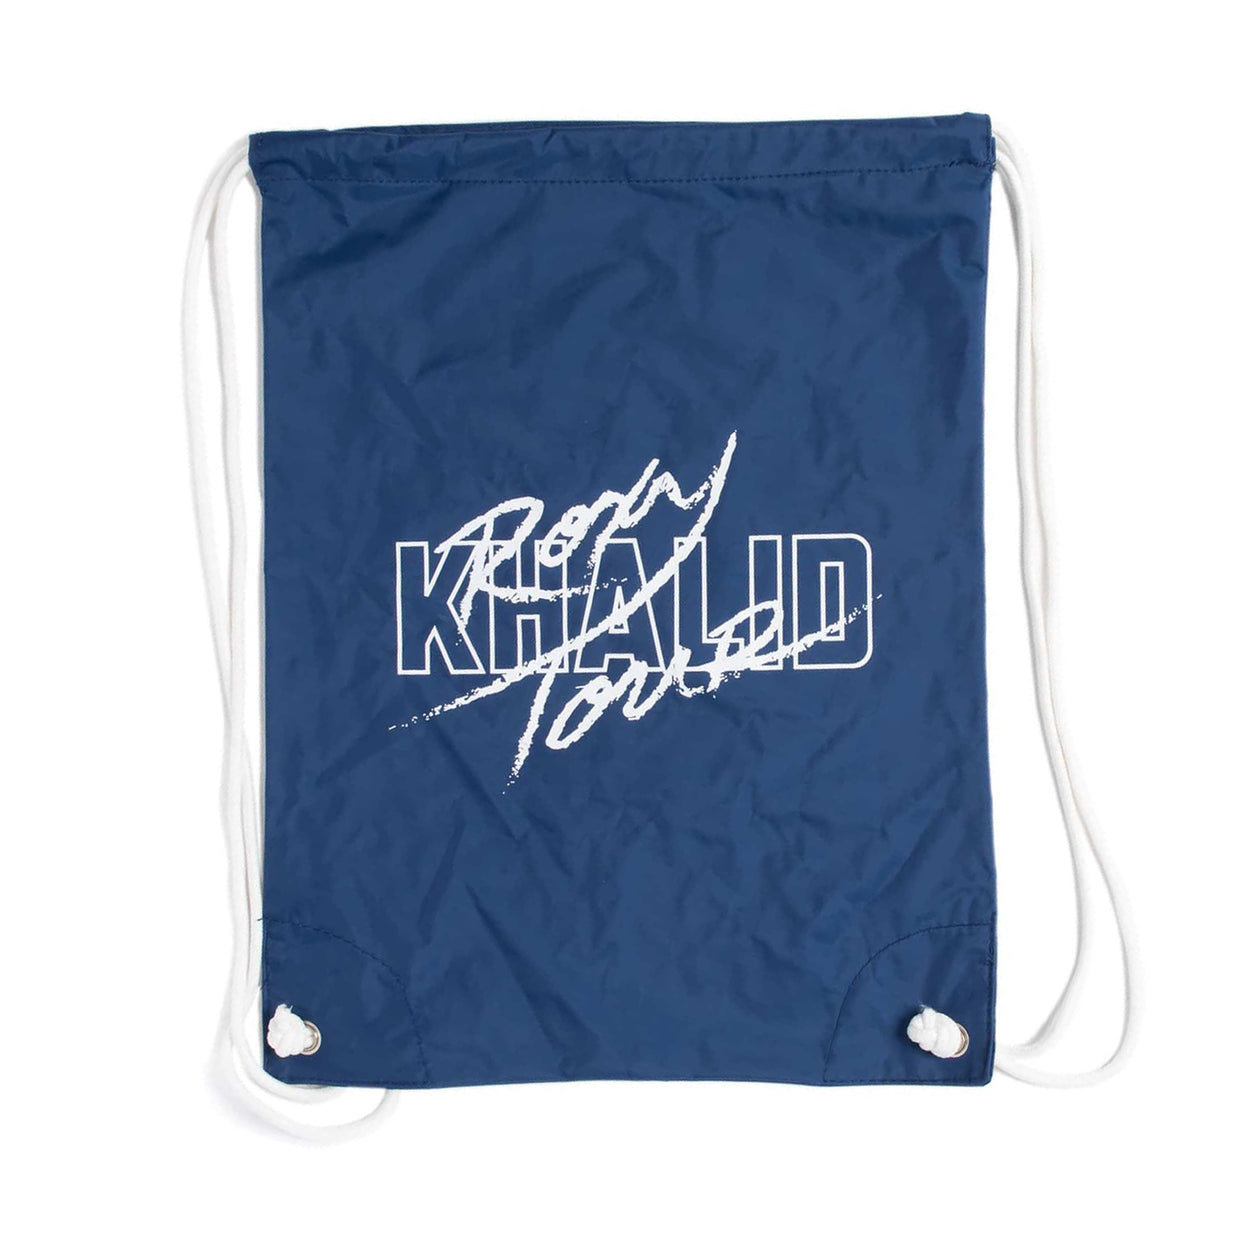 'Roxy Tour' Drawstring Bag